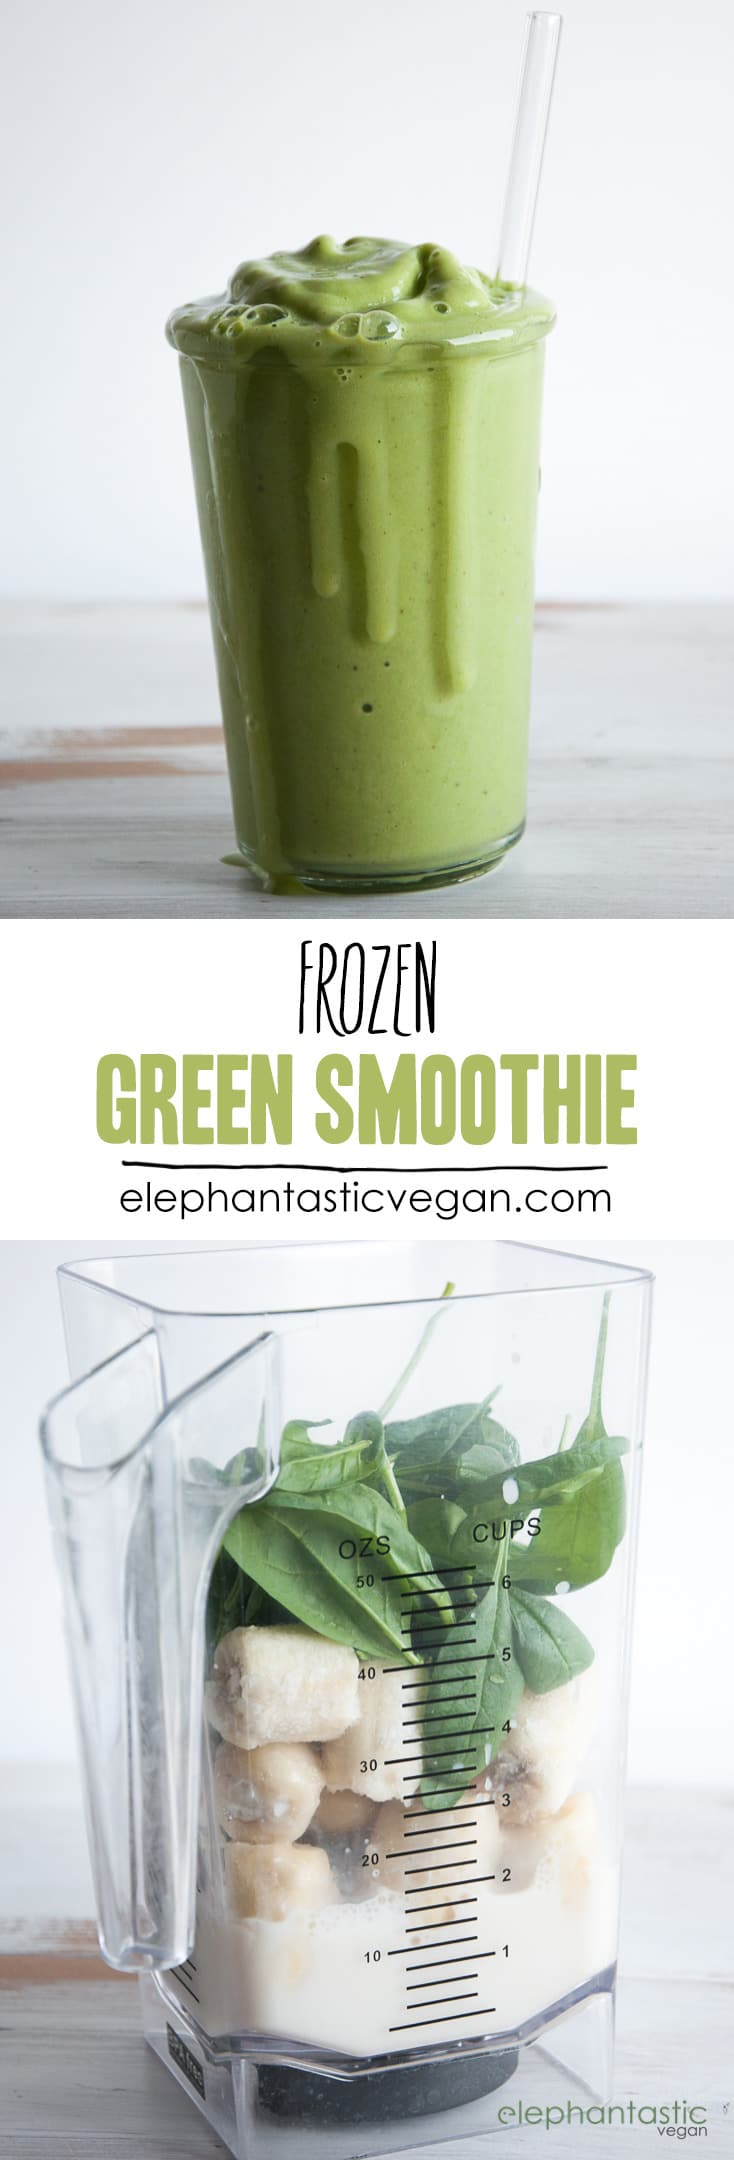 Frozen Green Smoothie | ElephantasticVegan.com